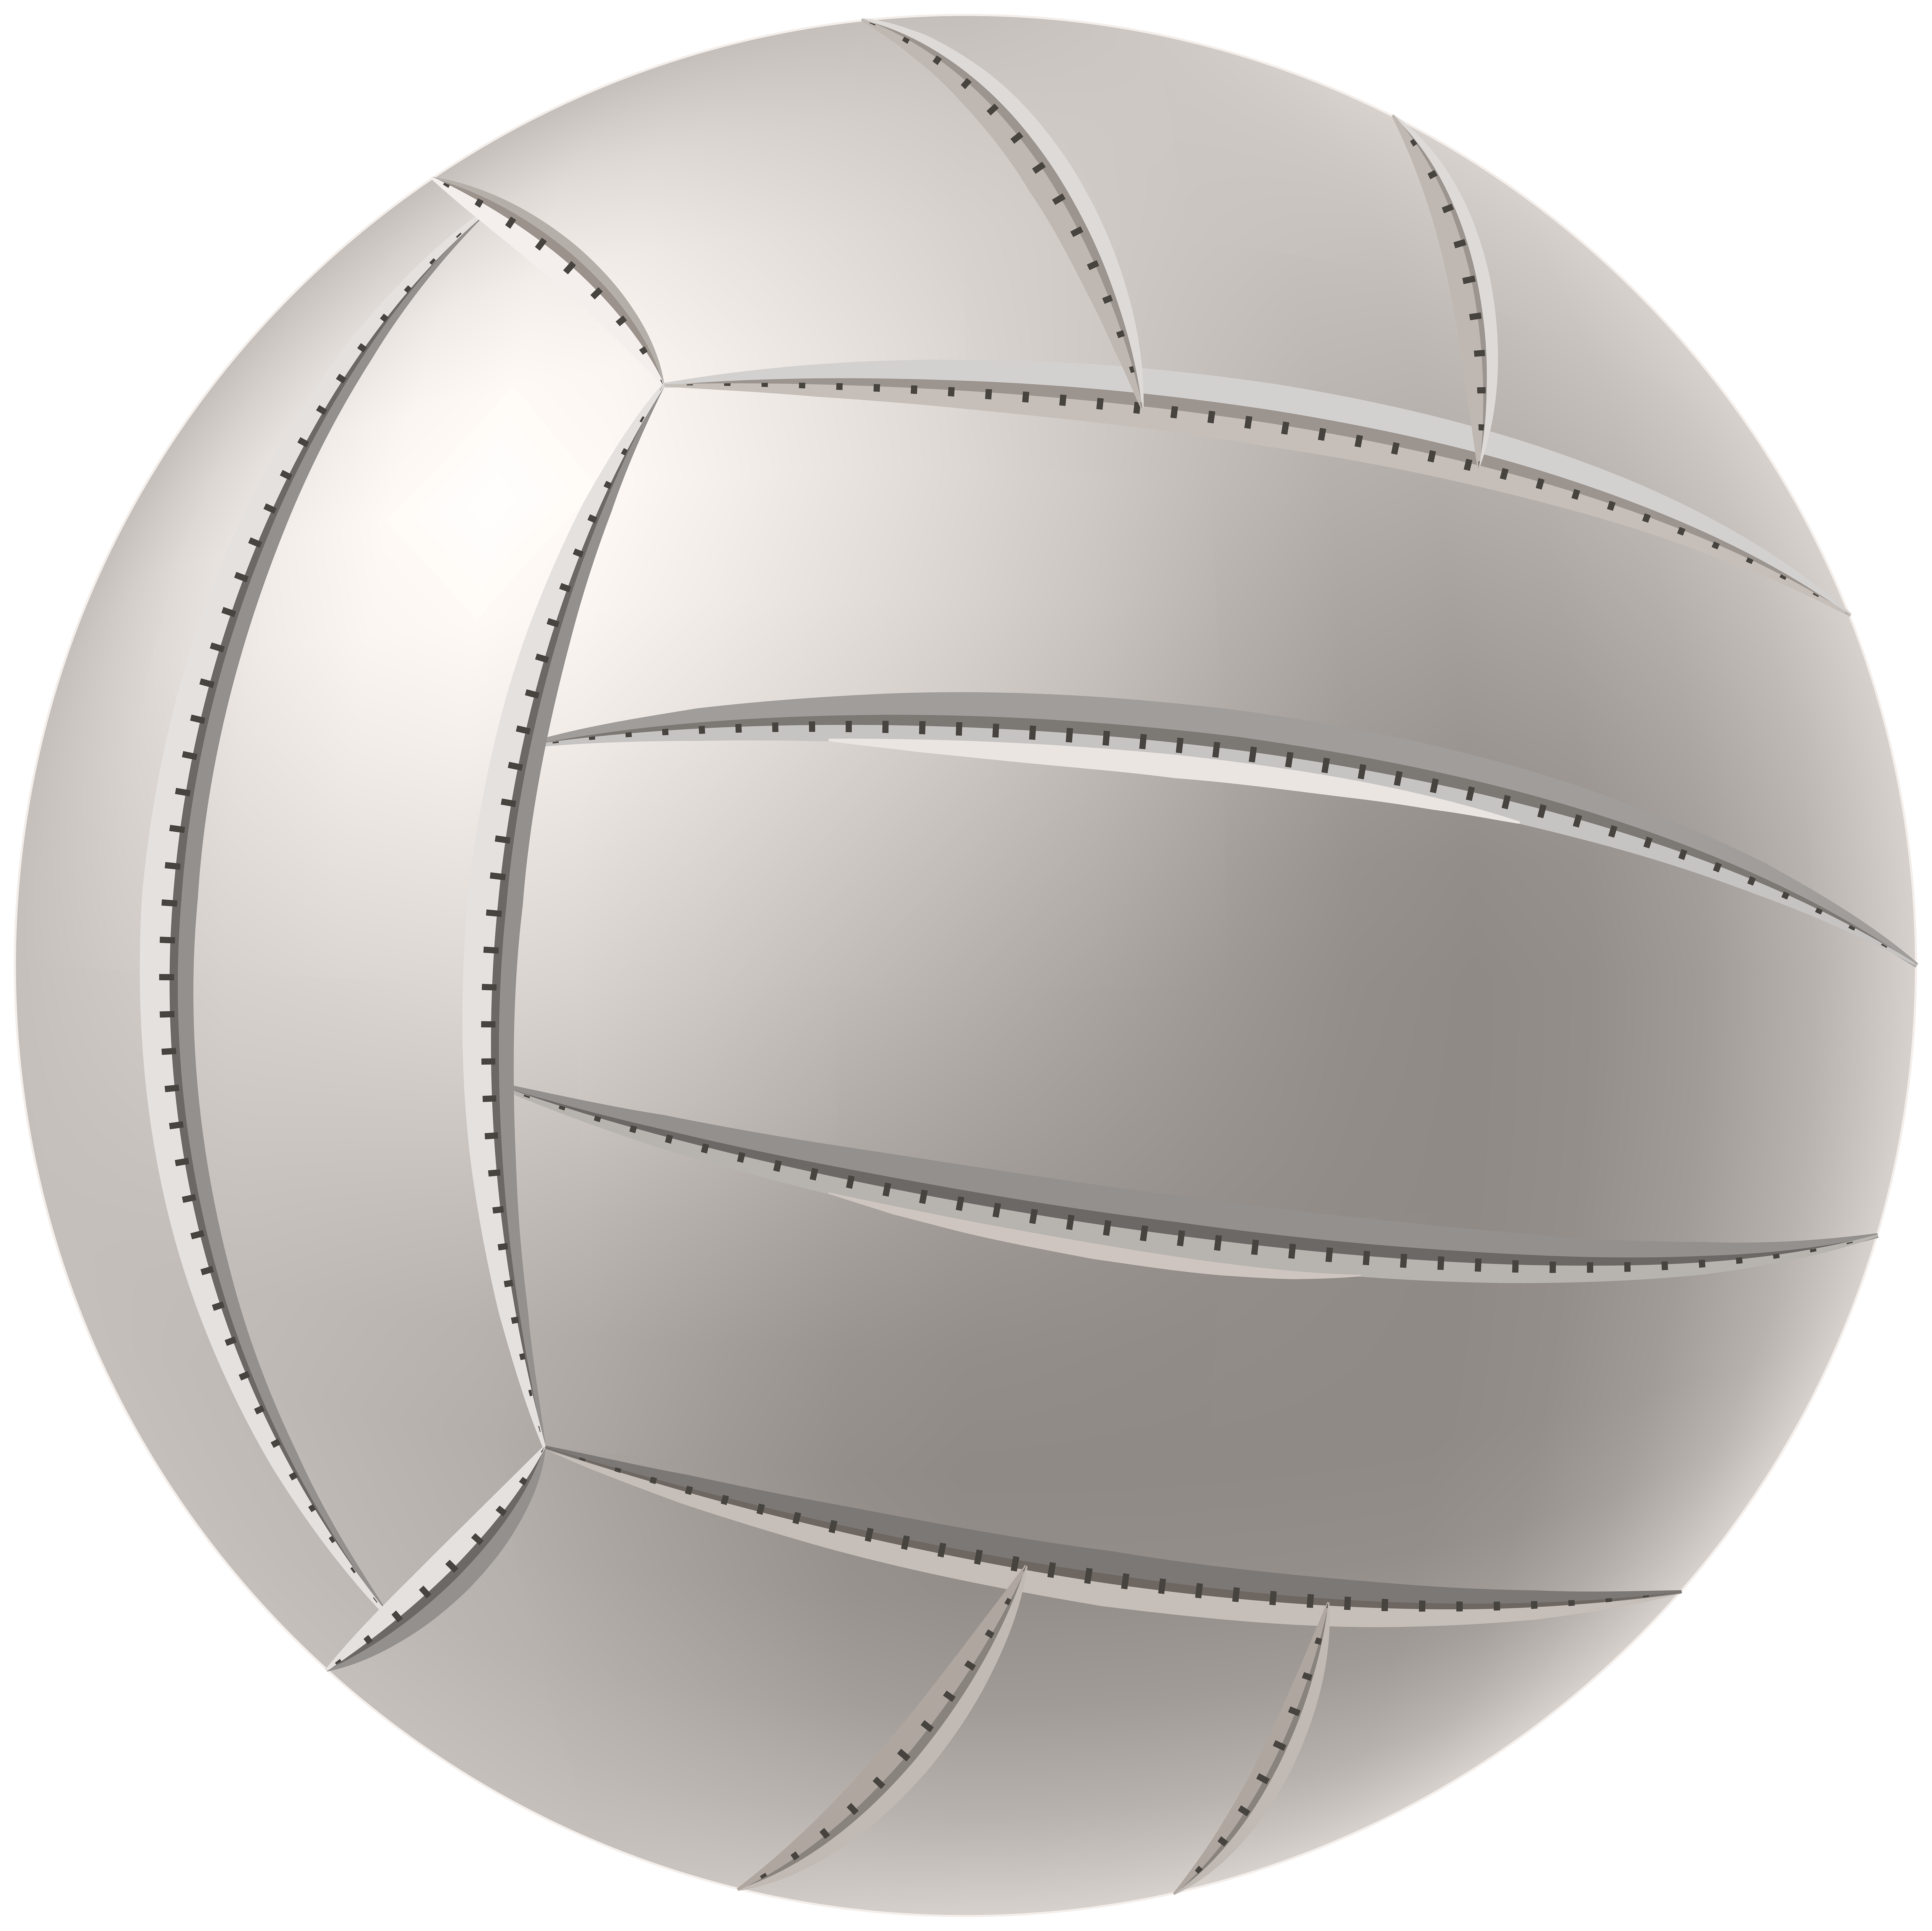 Volley ball png. Volleyball clip art image